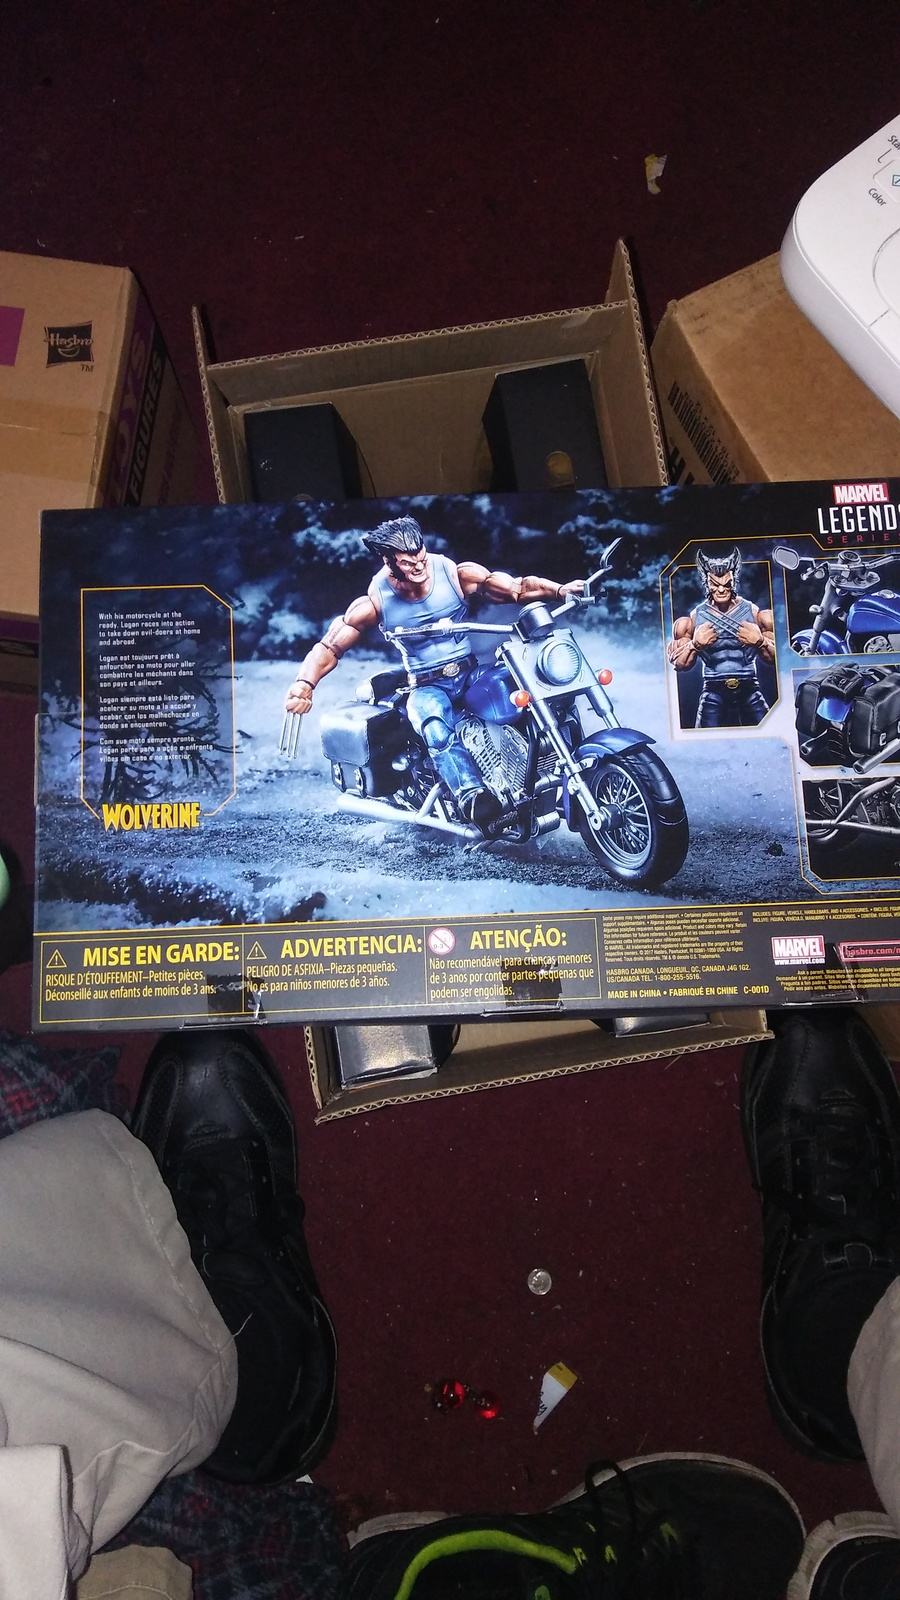 Marvel Legends Series 6-inch Wolverine with Motorcycle image 2